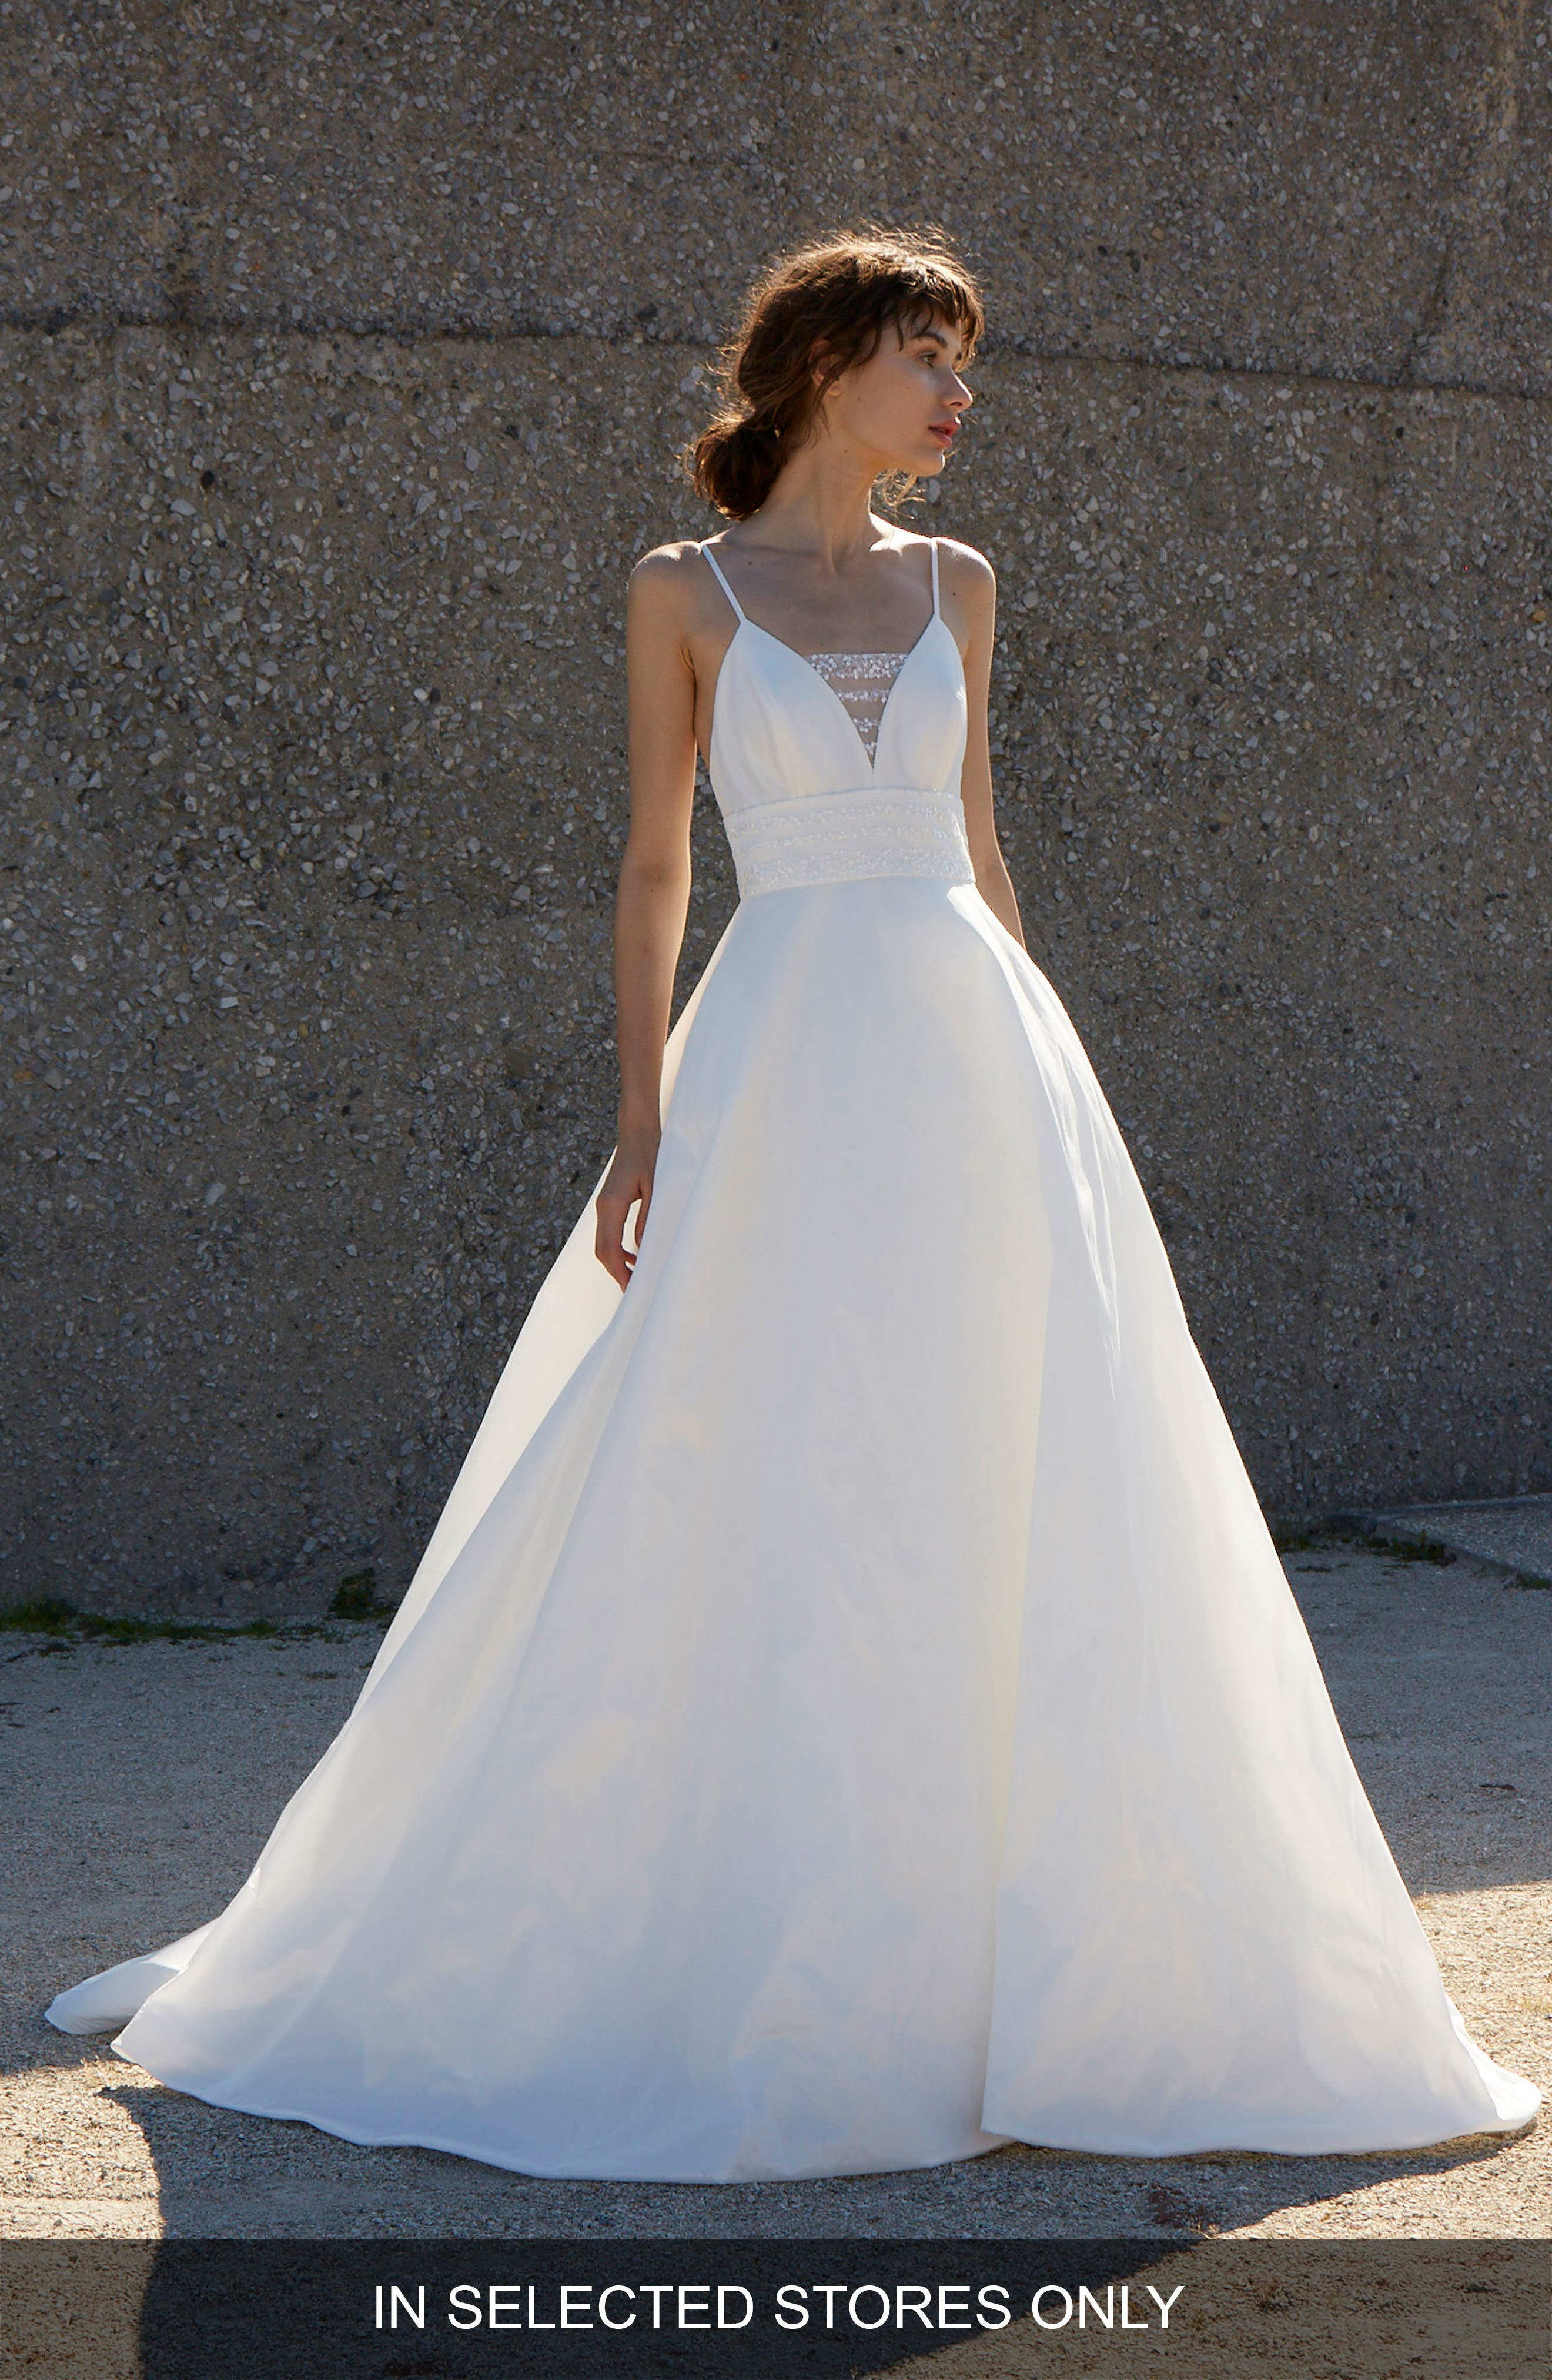 Nouvelle Amsale Esther Embellished Ballgown, Size IN STORE ONLY - White